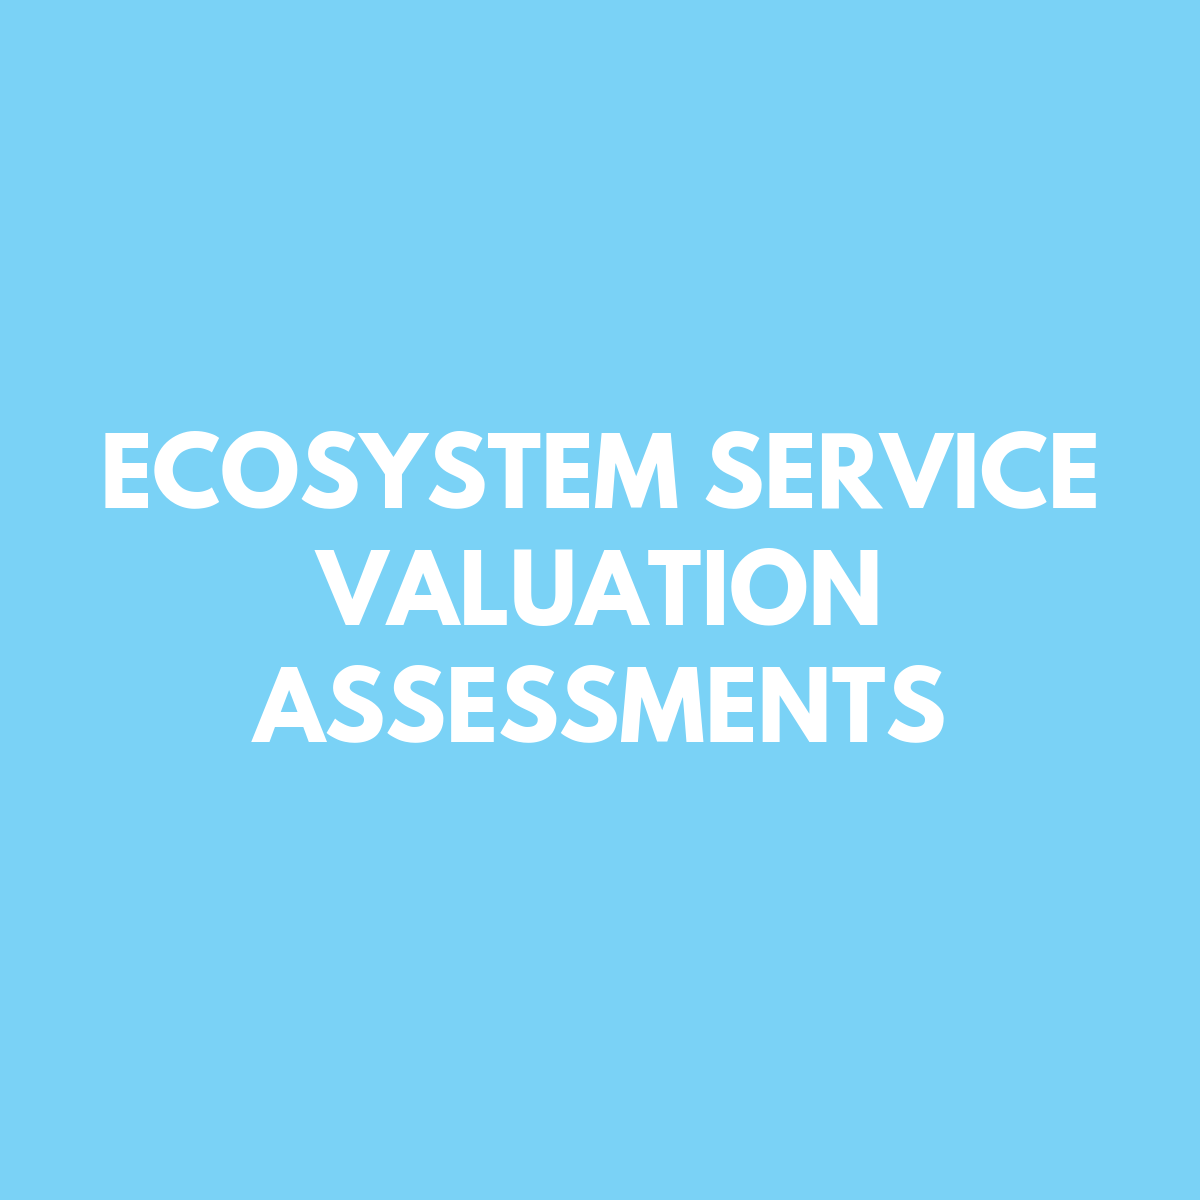 Ecosystem Service Valuation Assessment